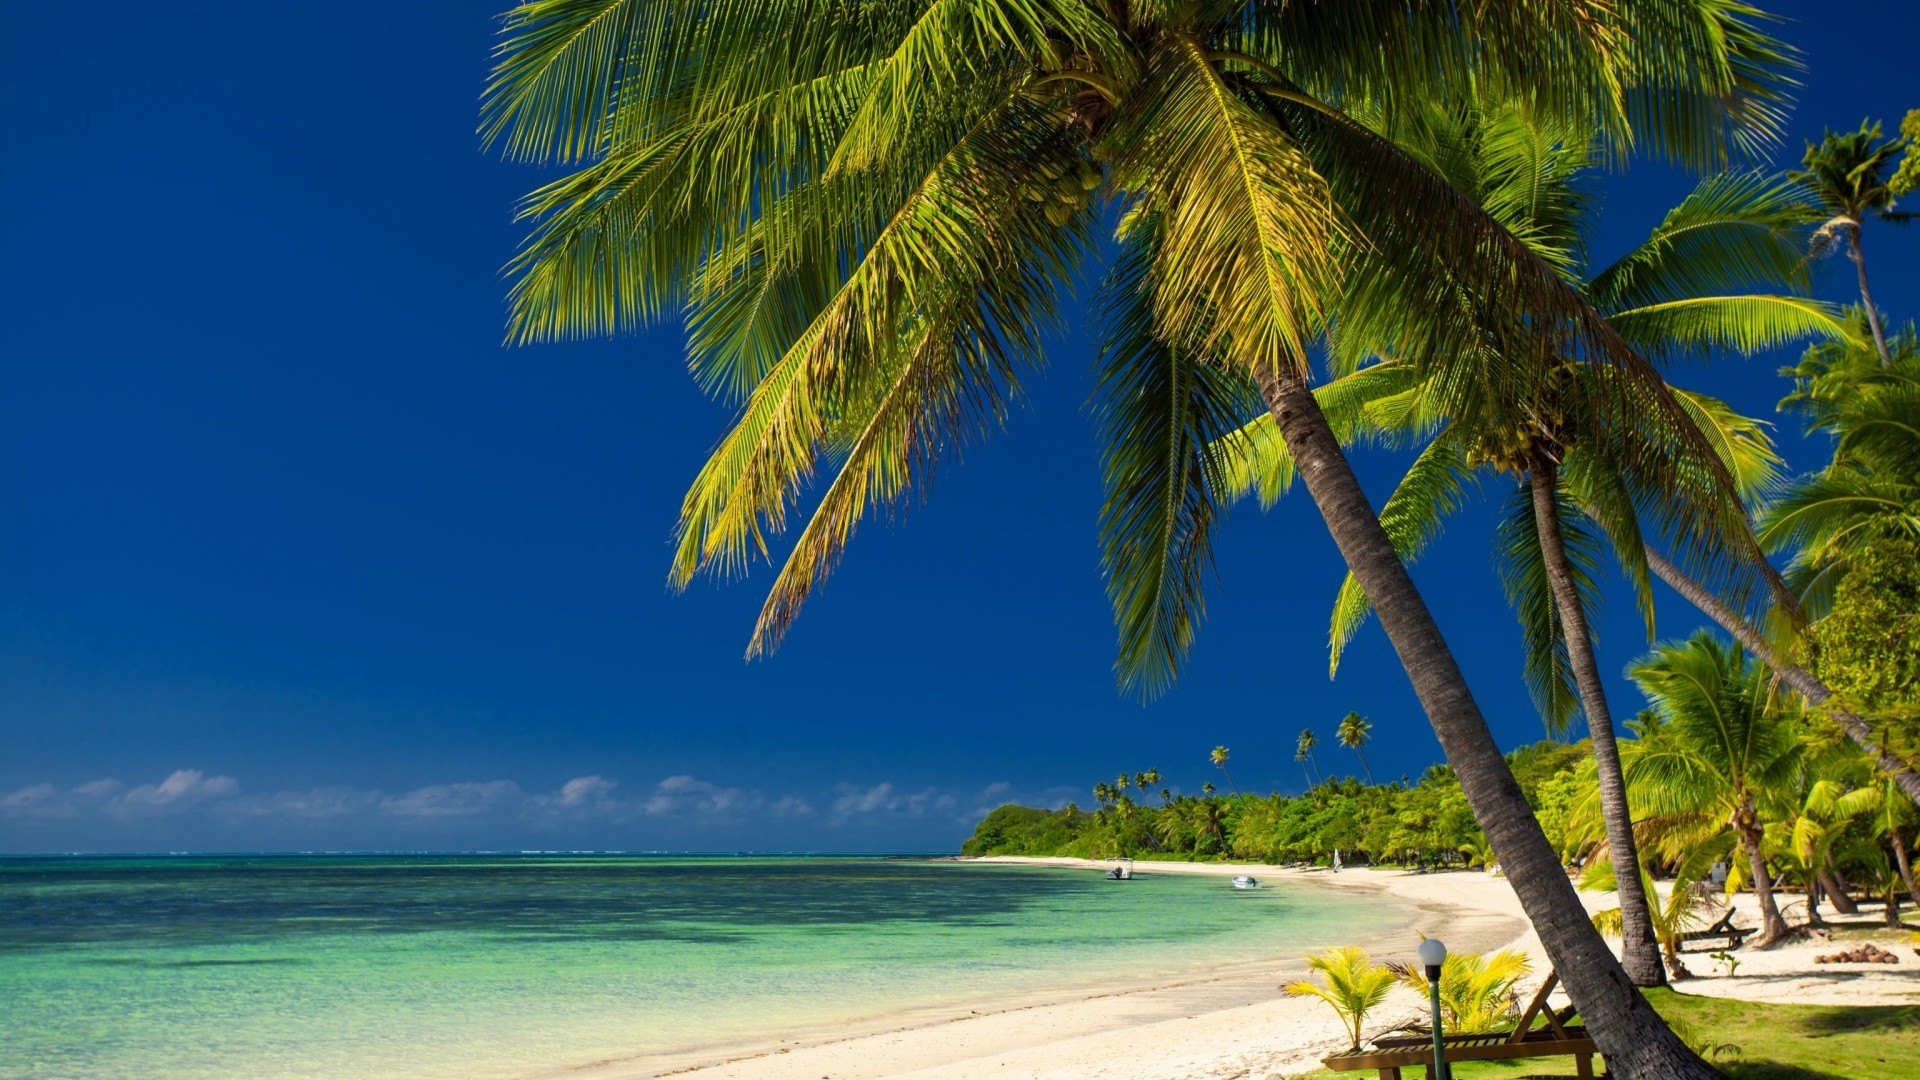 Dominican republic wallpaper in hd 60 images - Dominican republic wallpaper ...